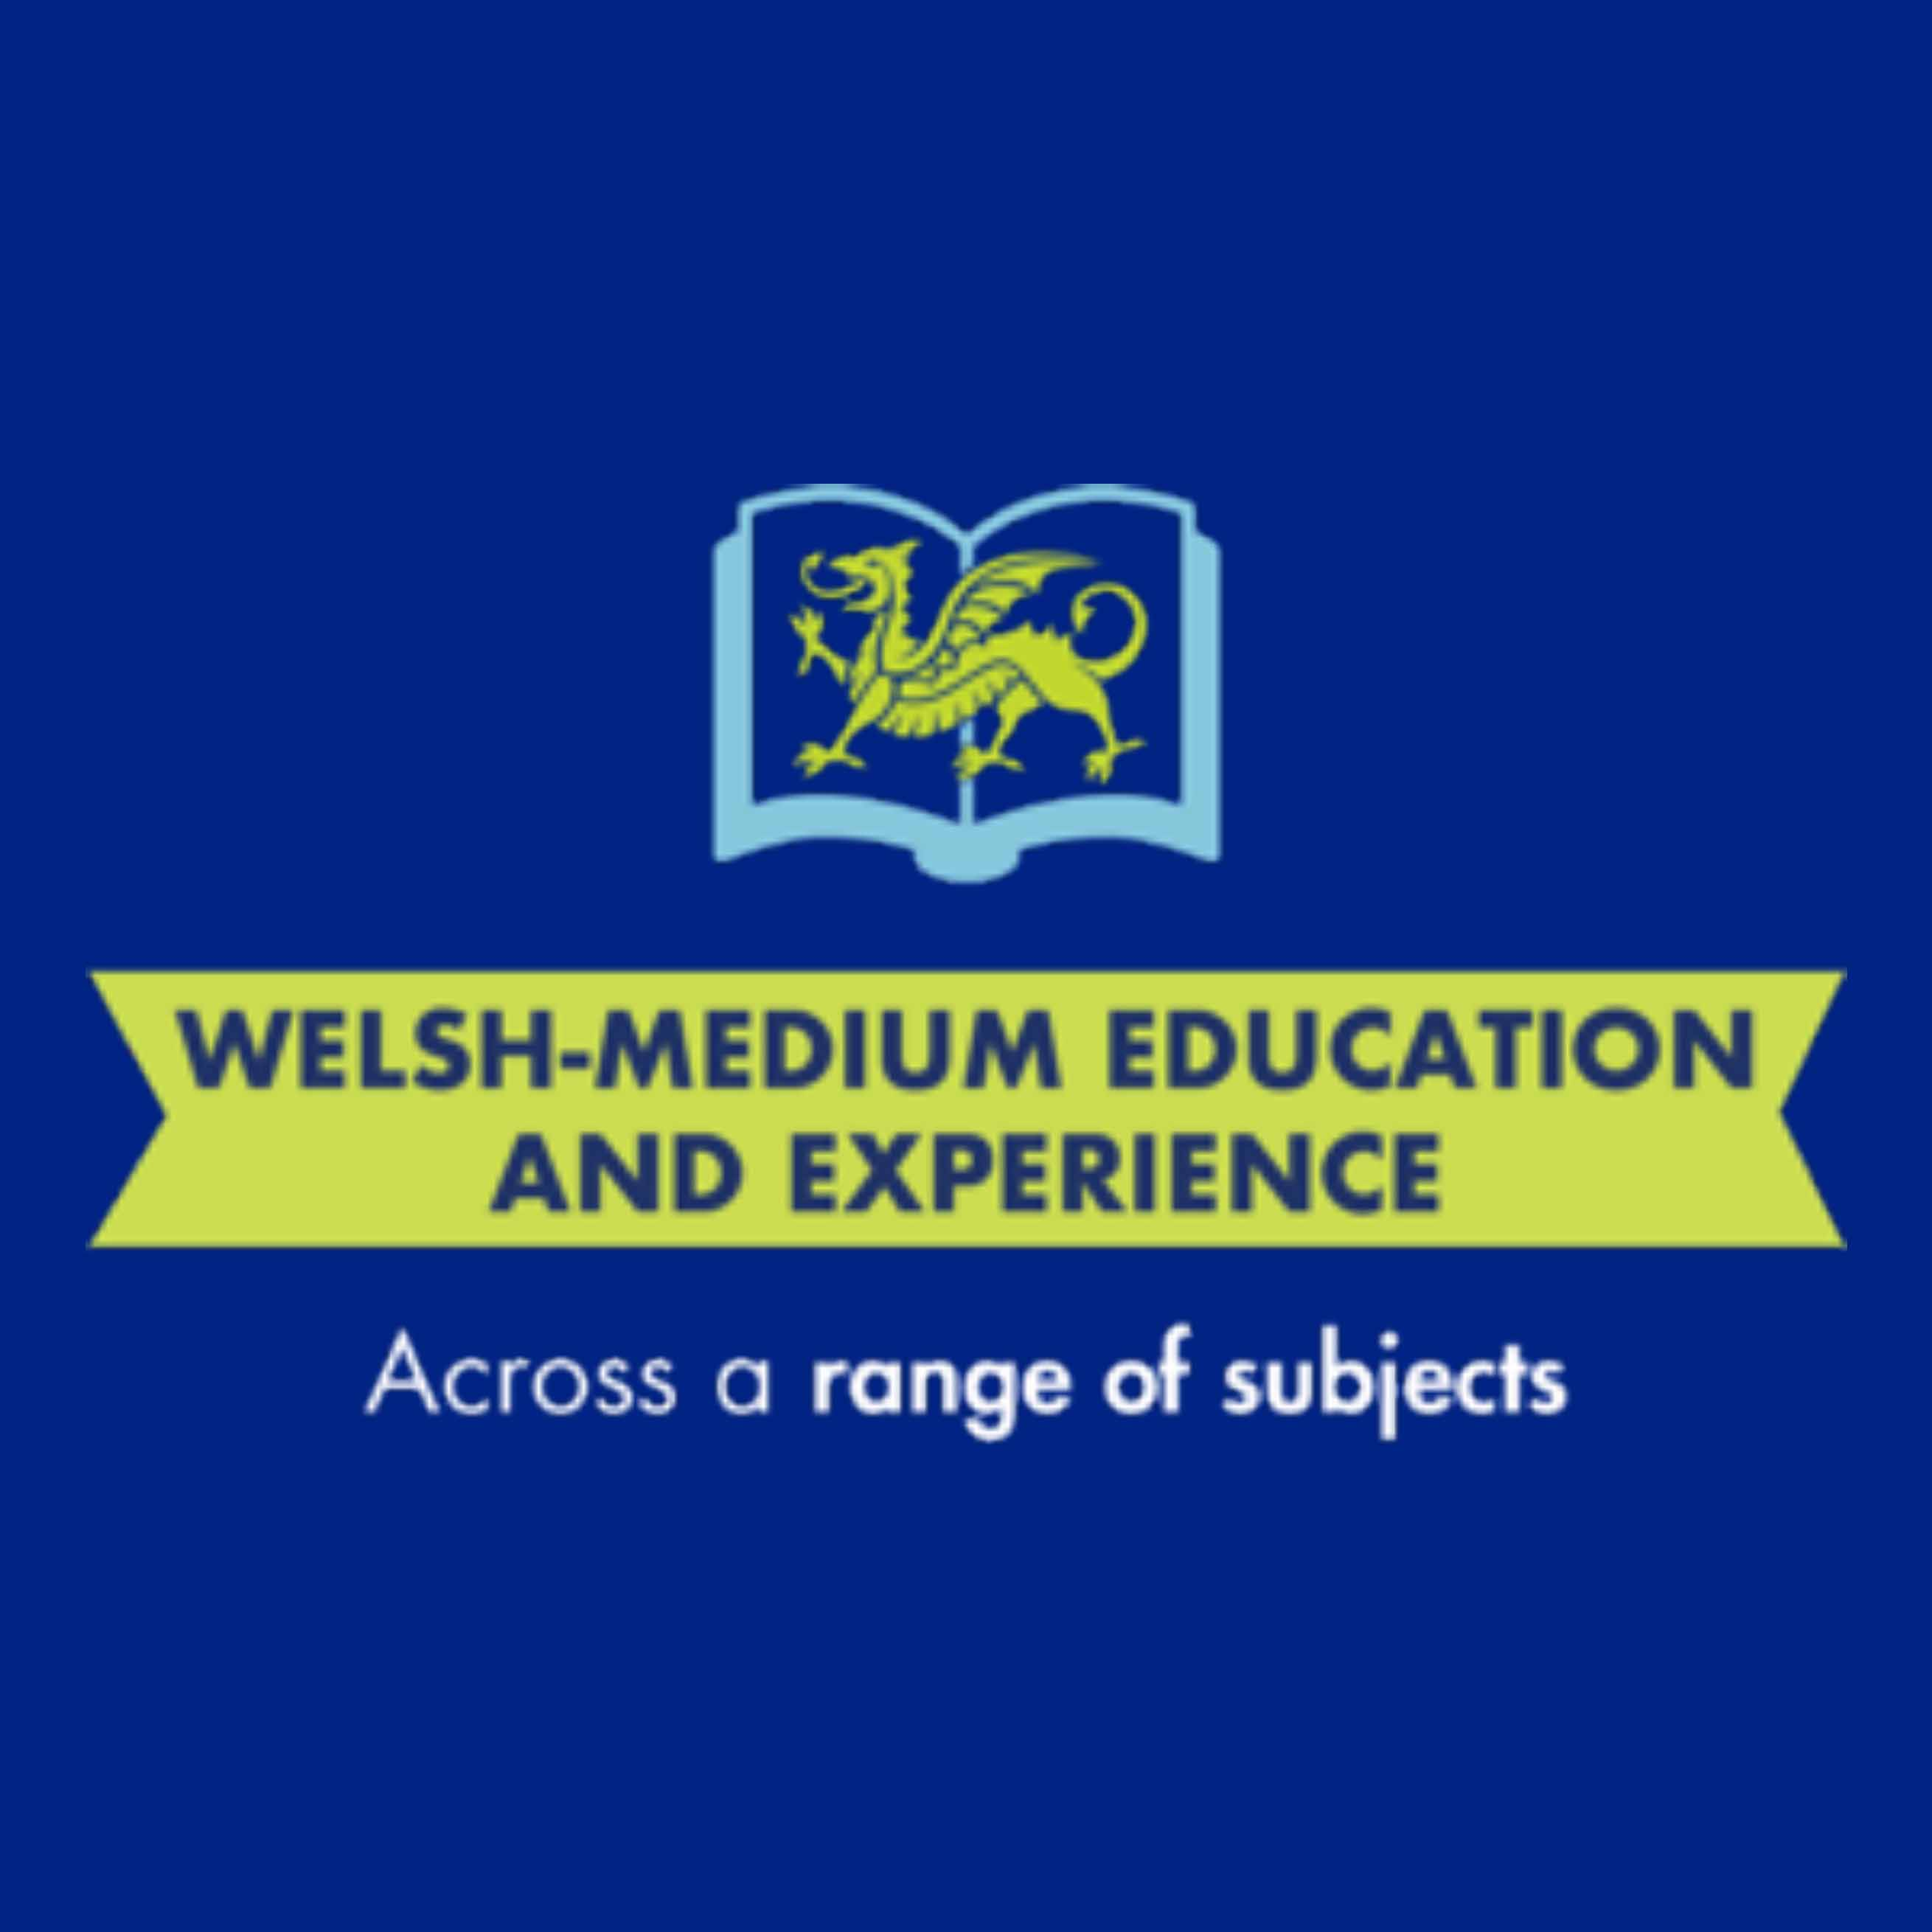 Welsh-medium education and experience across a range of subjects